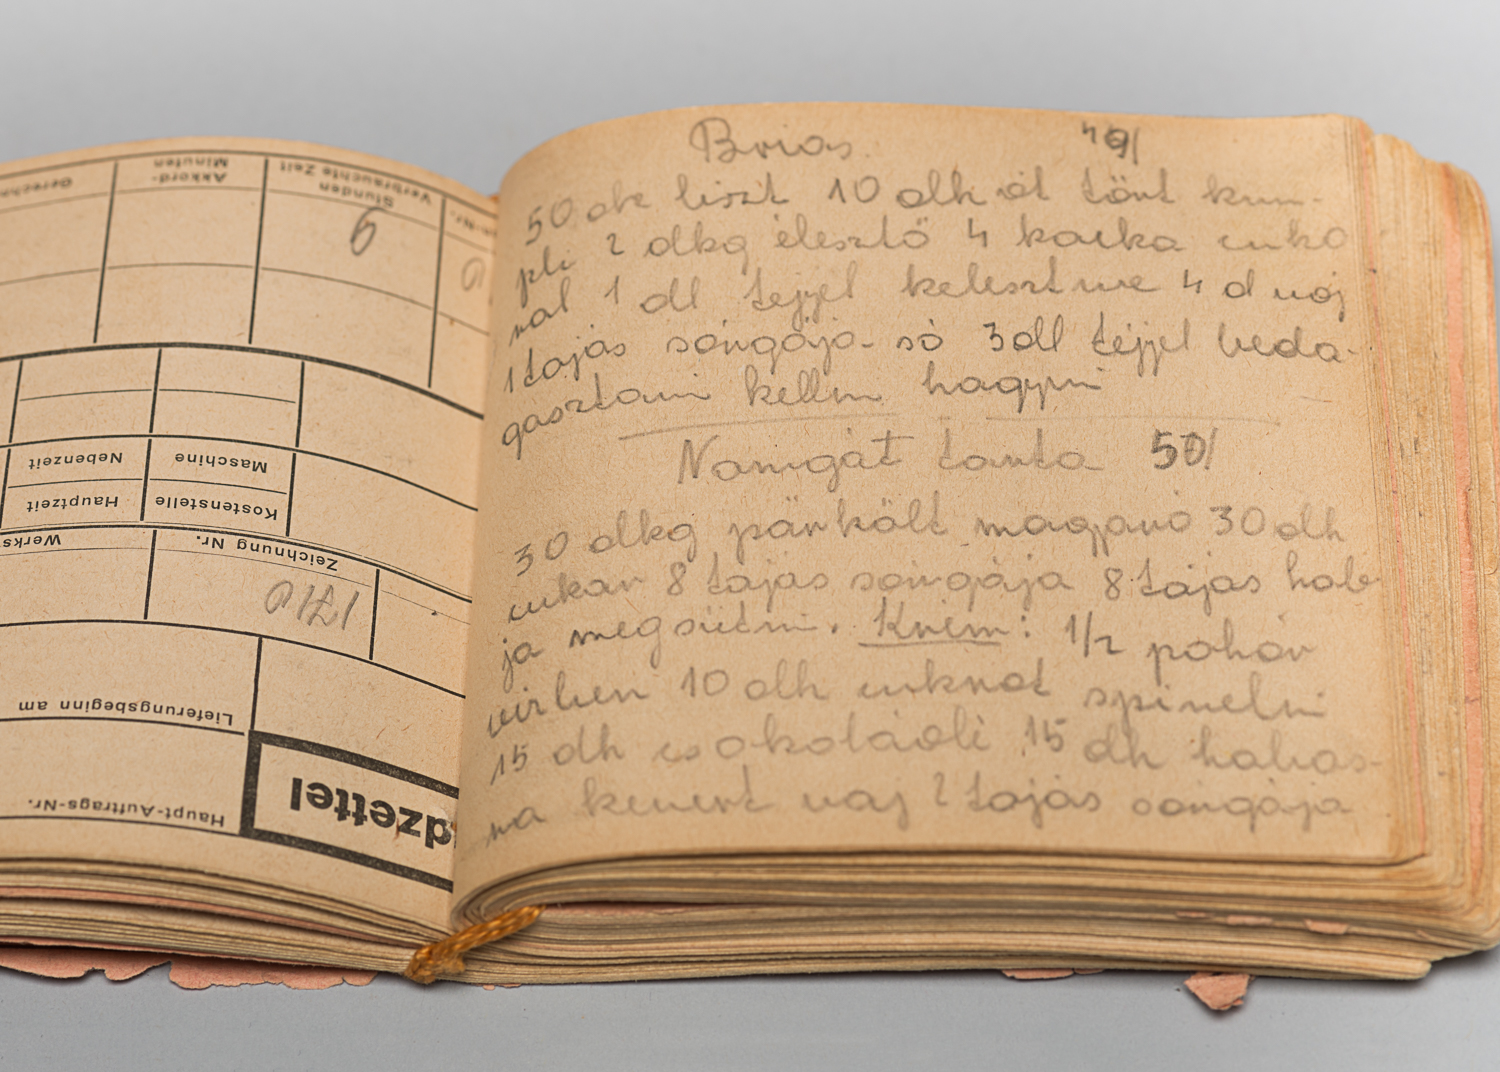 In her barrack, Edith wrote down recipes that she remembered preparing before the war. She also asked other inmates to contribute their favourite recipes. (Photo : Peter Berra)